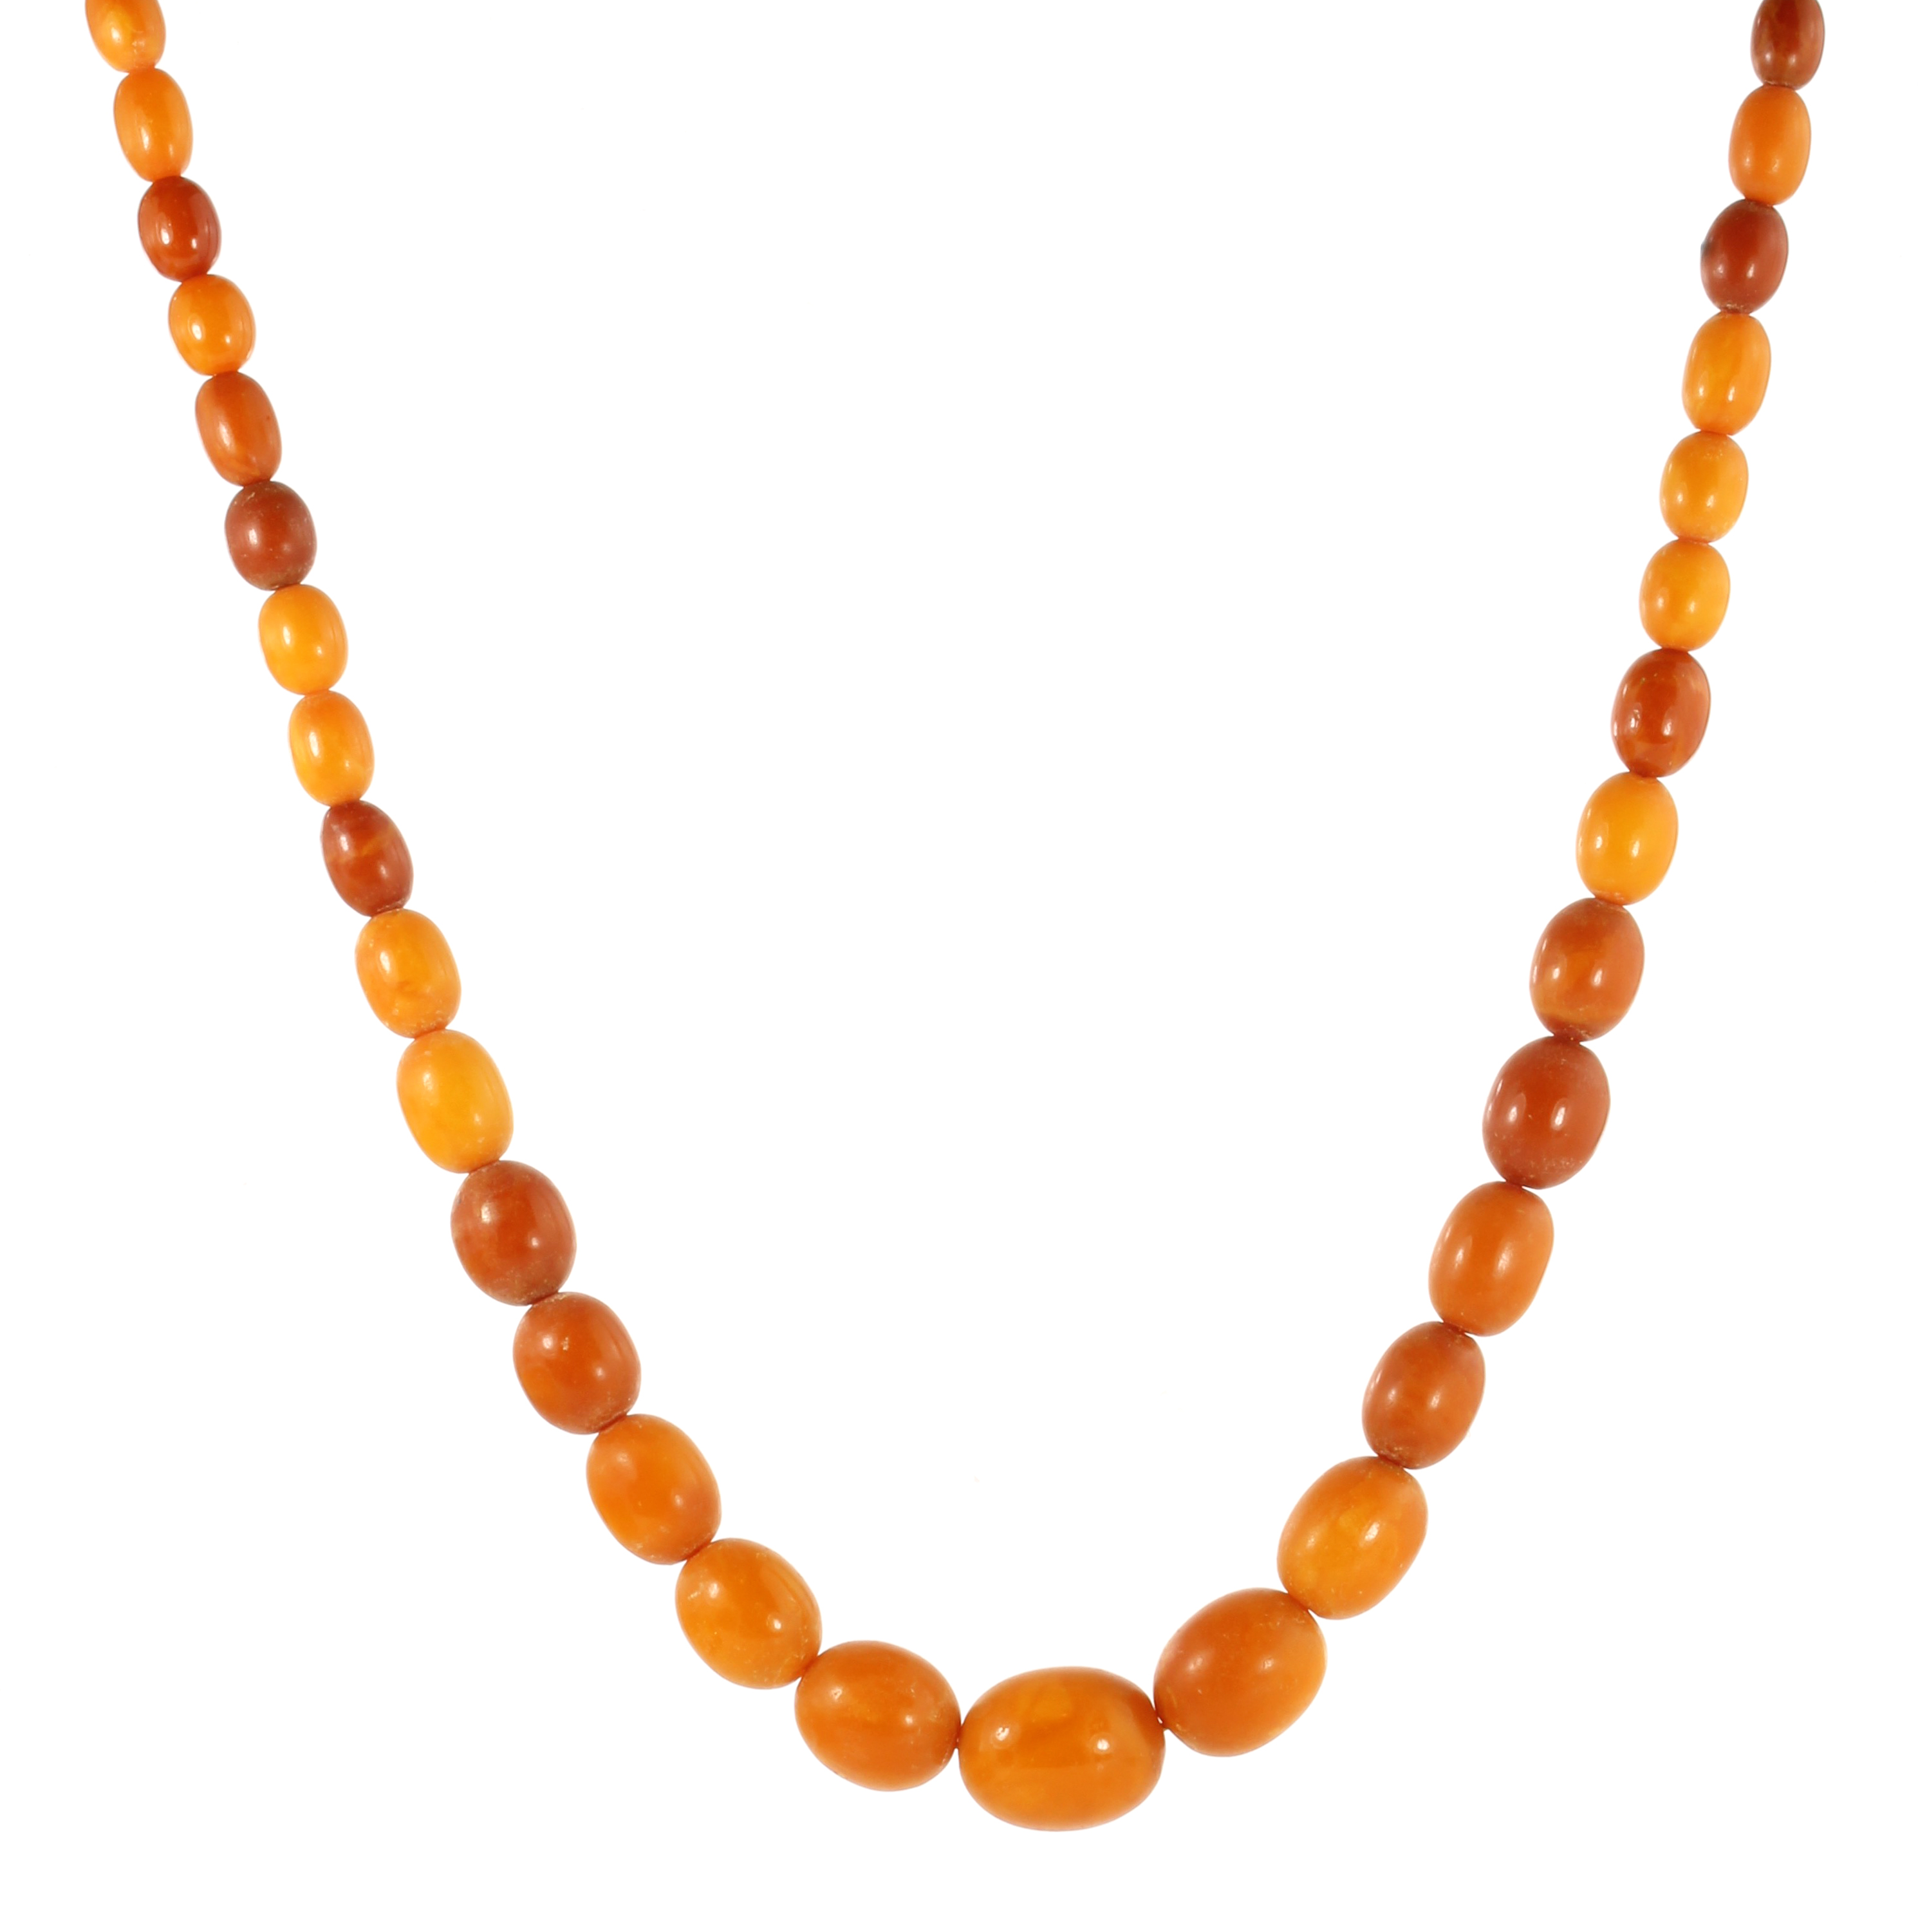 Los 9 - A NATURAL AMBER BEAD NECKLACE comprising a single row of eighty-three graduated polished oval